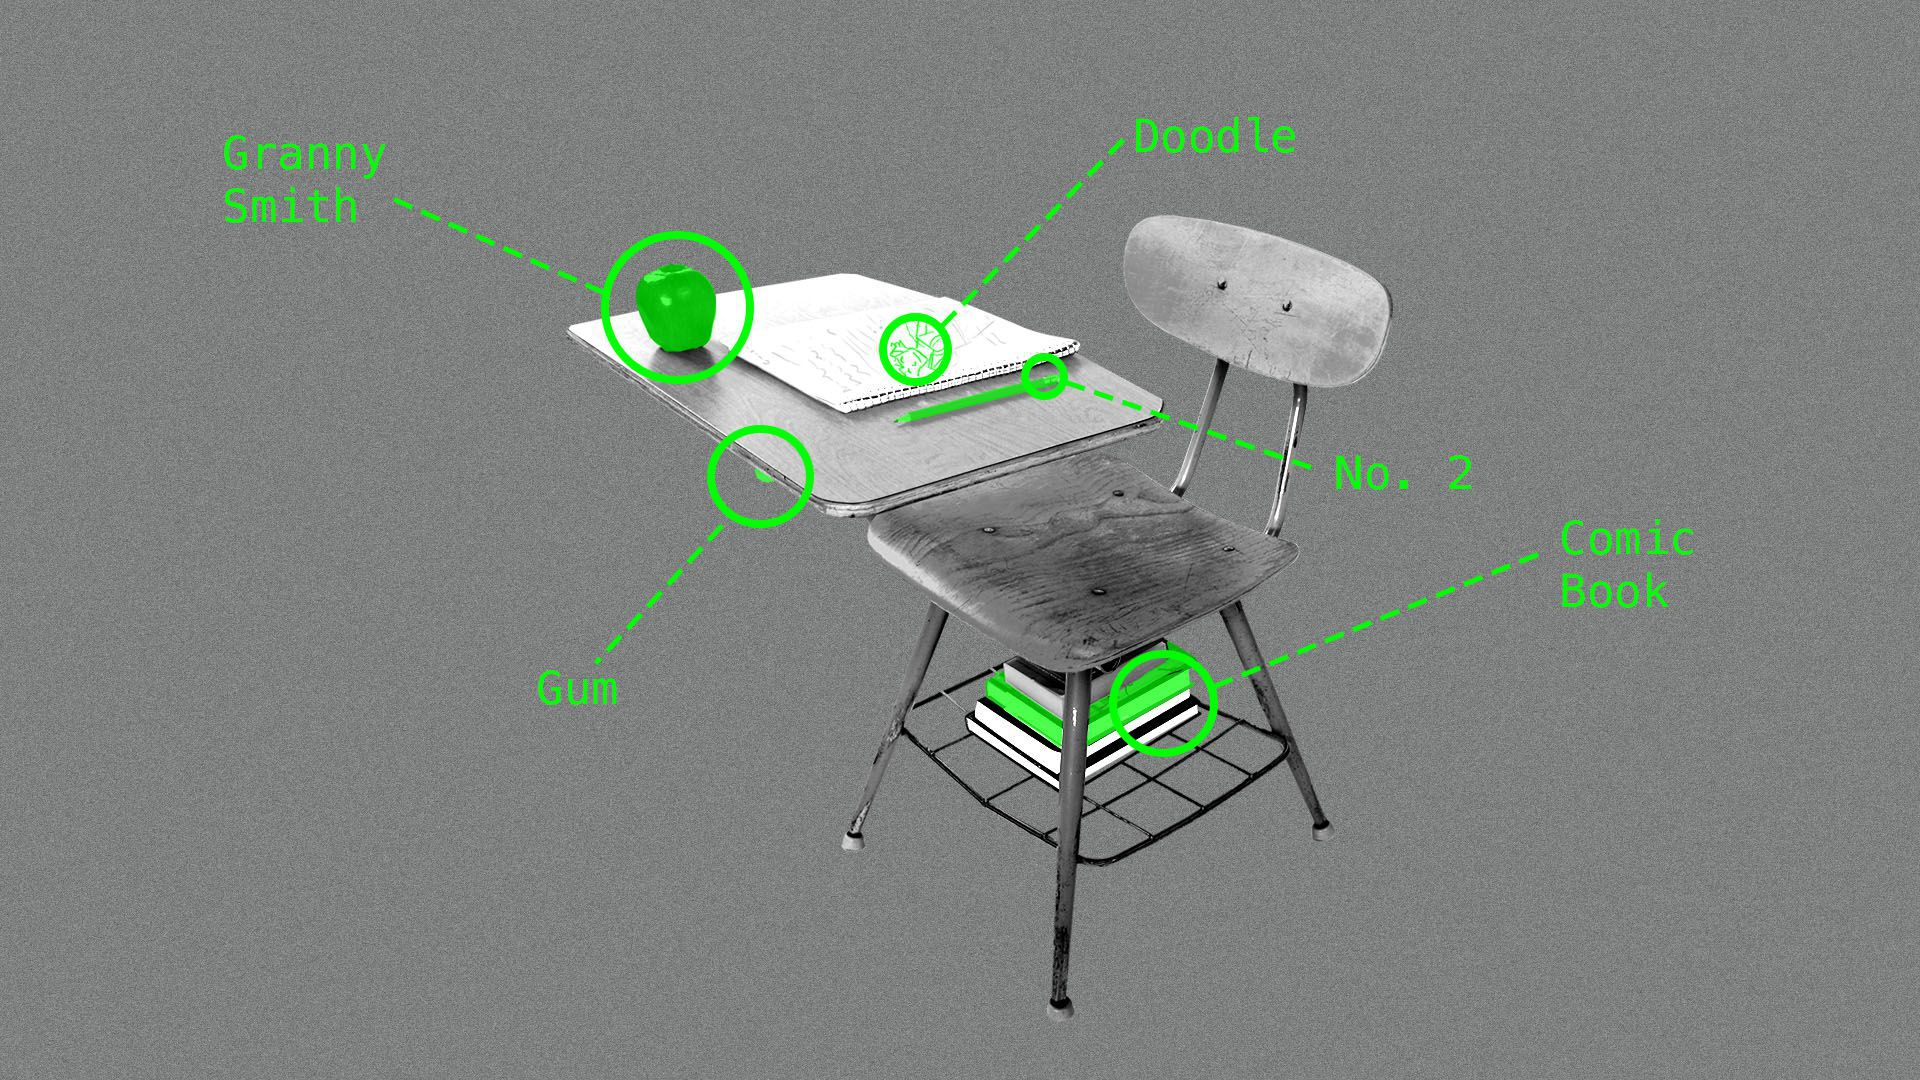 Illustration of a school desk with items highlighted and annotated in green